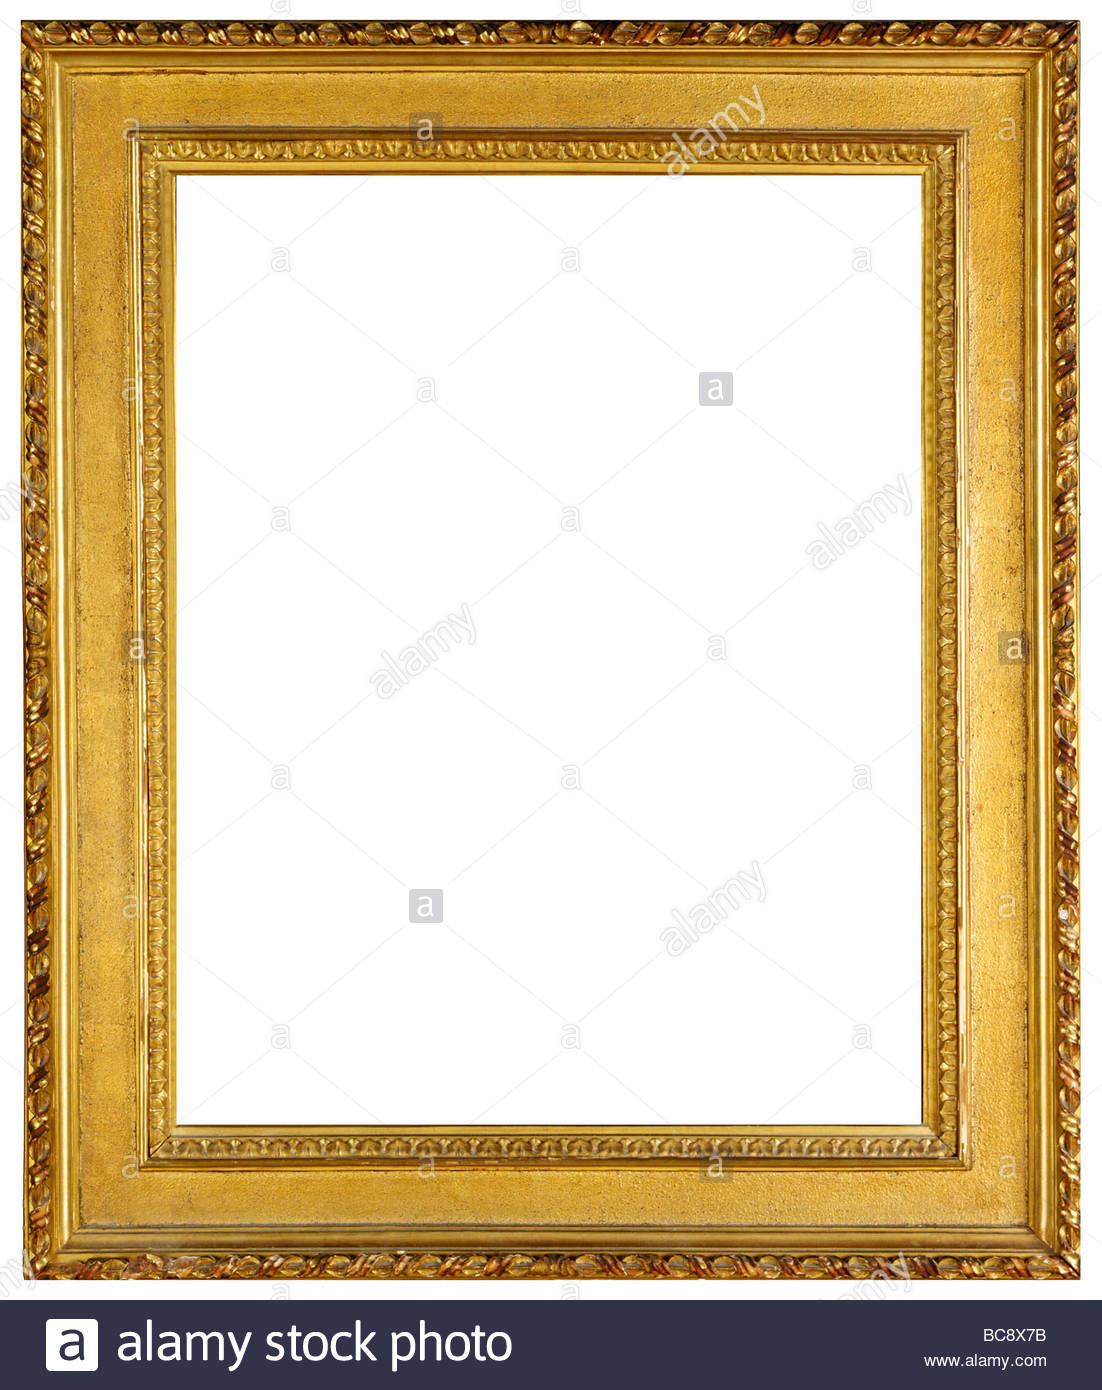 Gold Leaf Oil Painting Frame 100 To 200 Years Old Dropped Out On